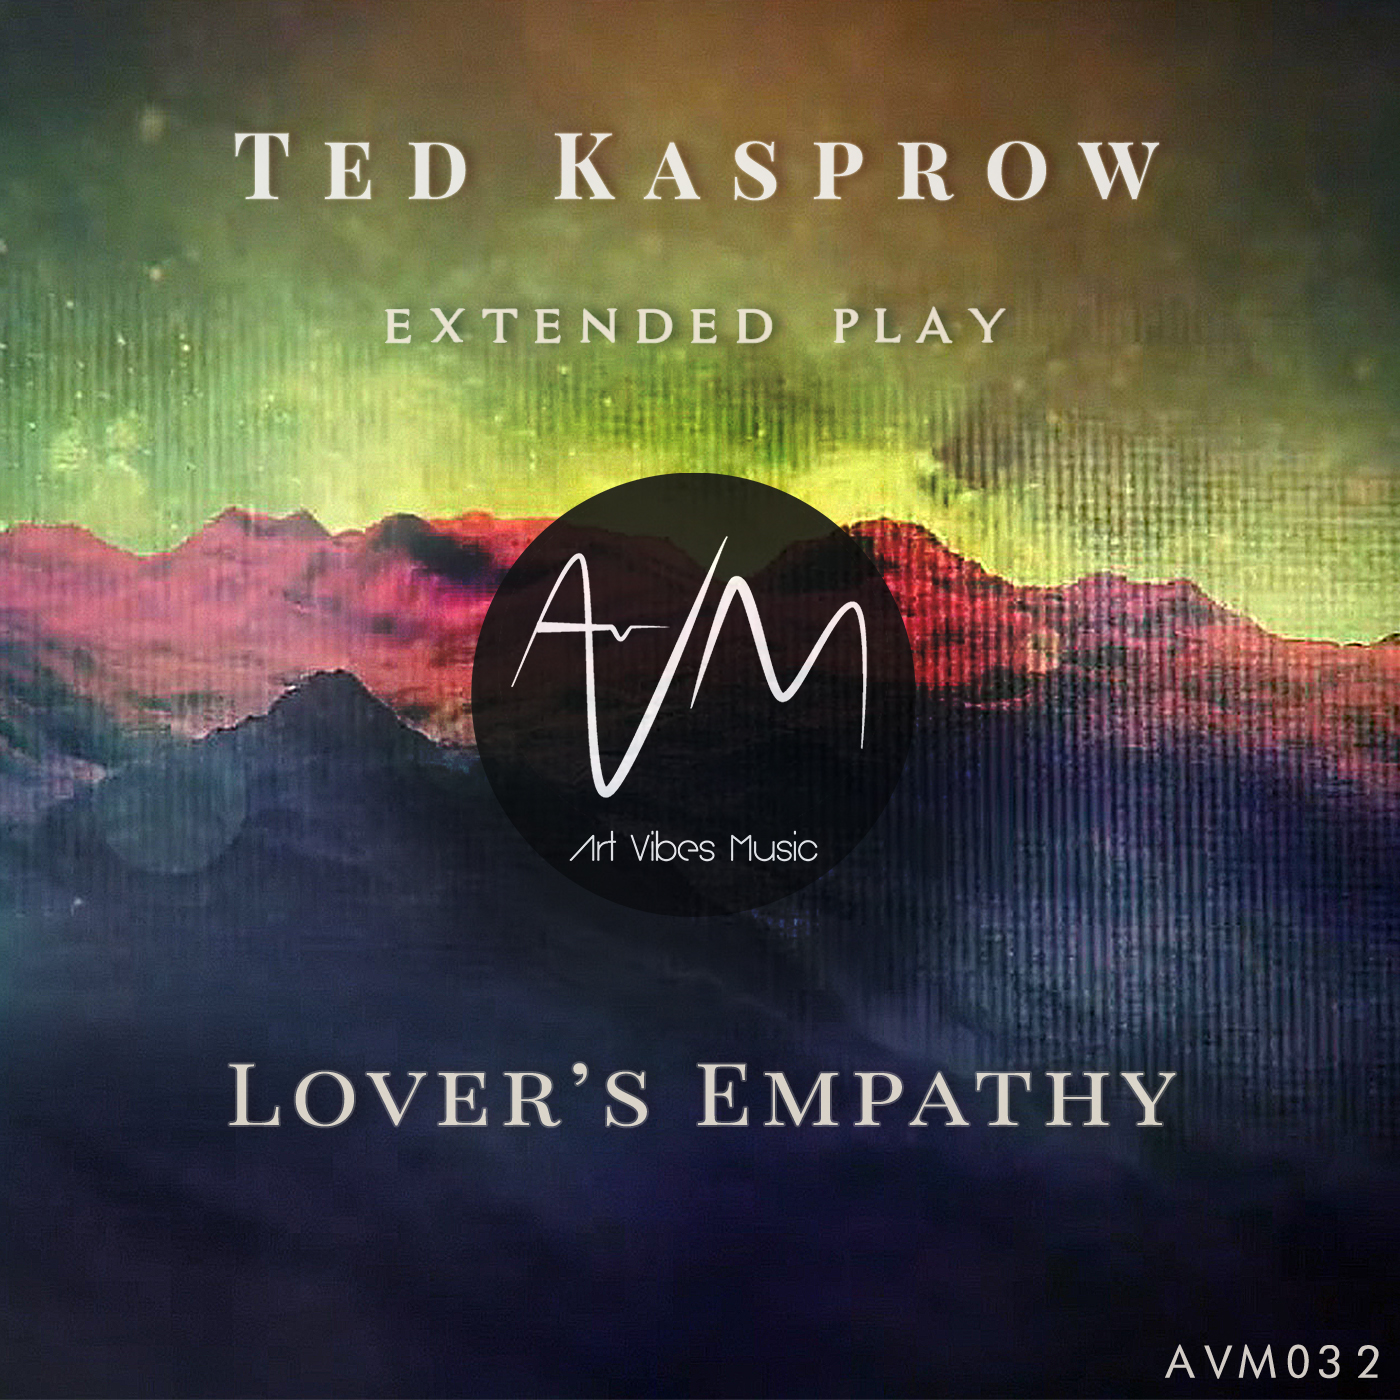 The Lover's Empathy Image